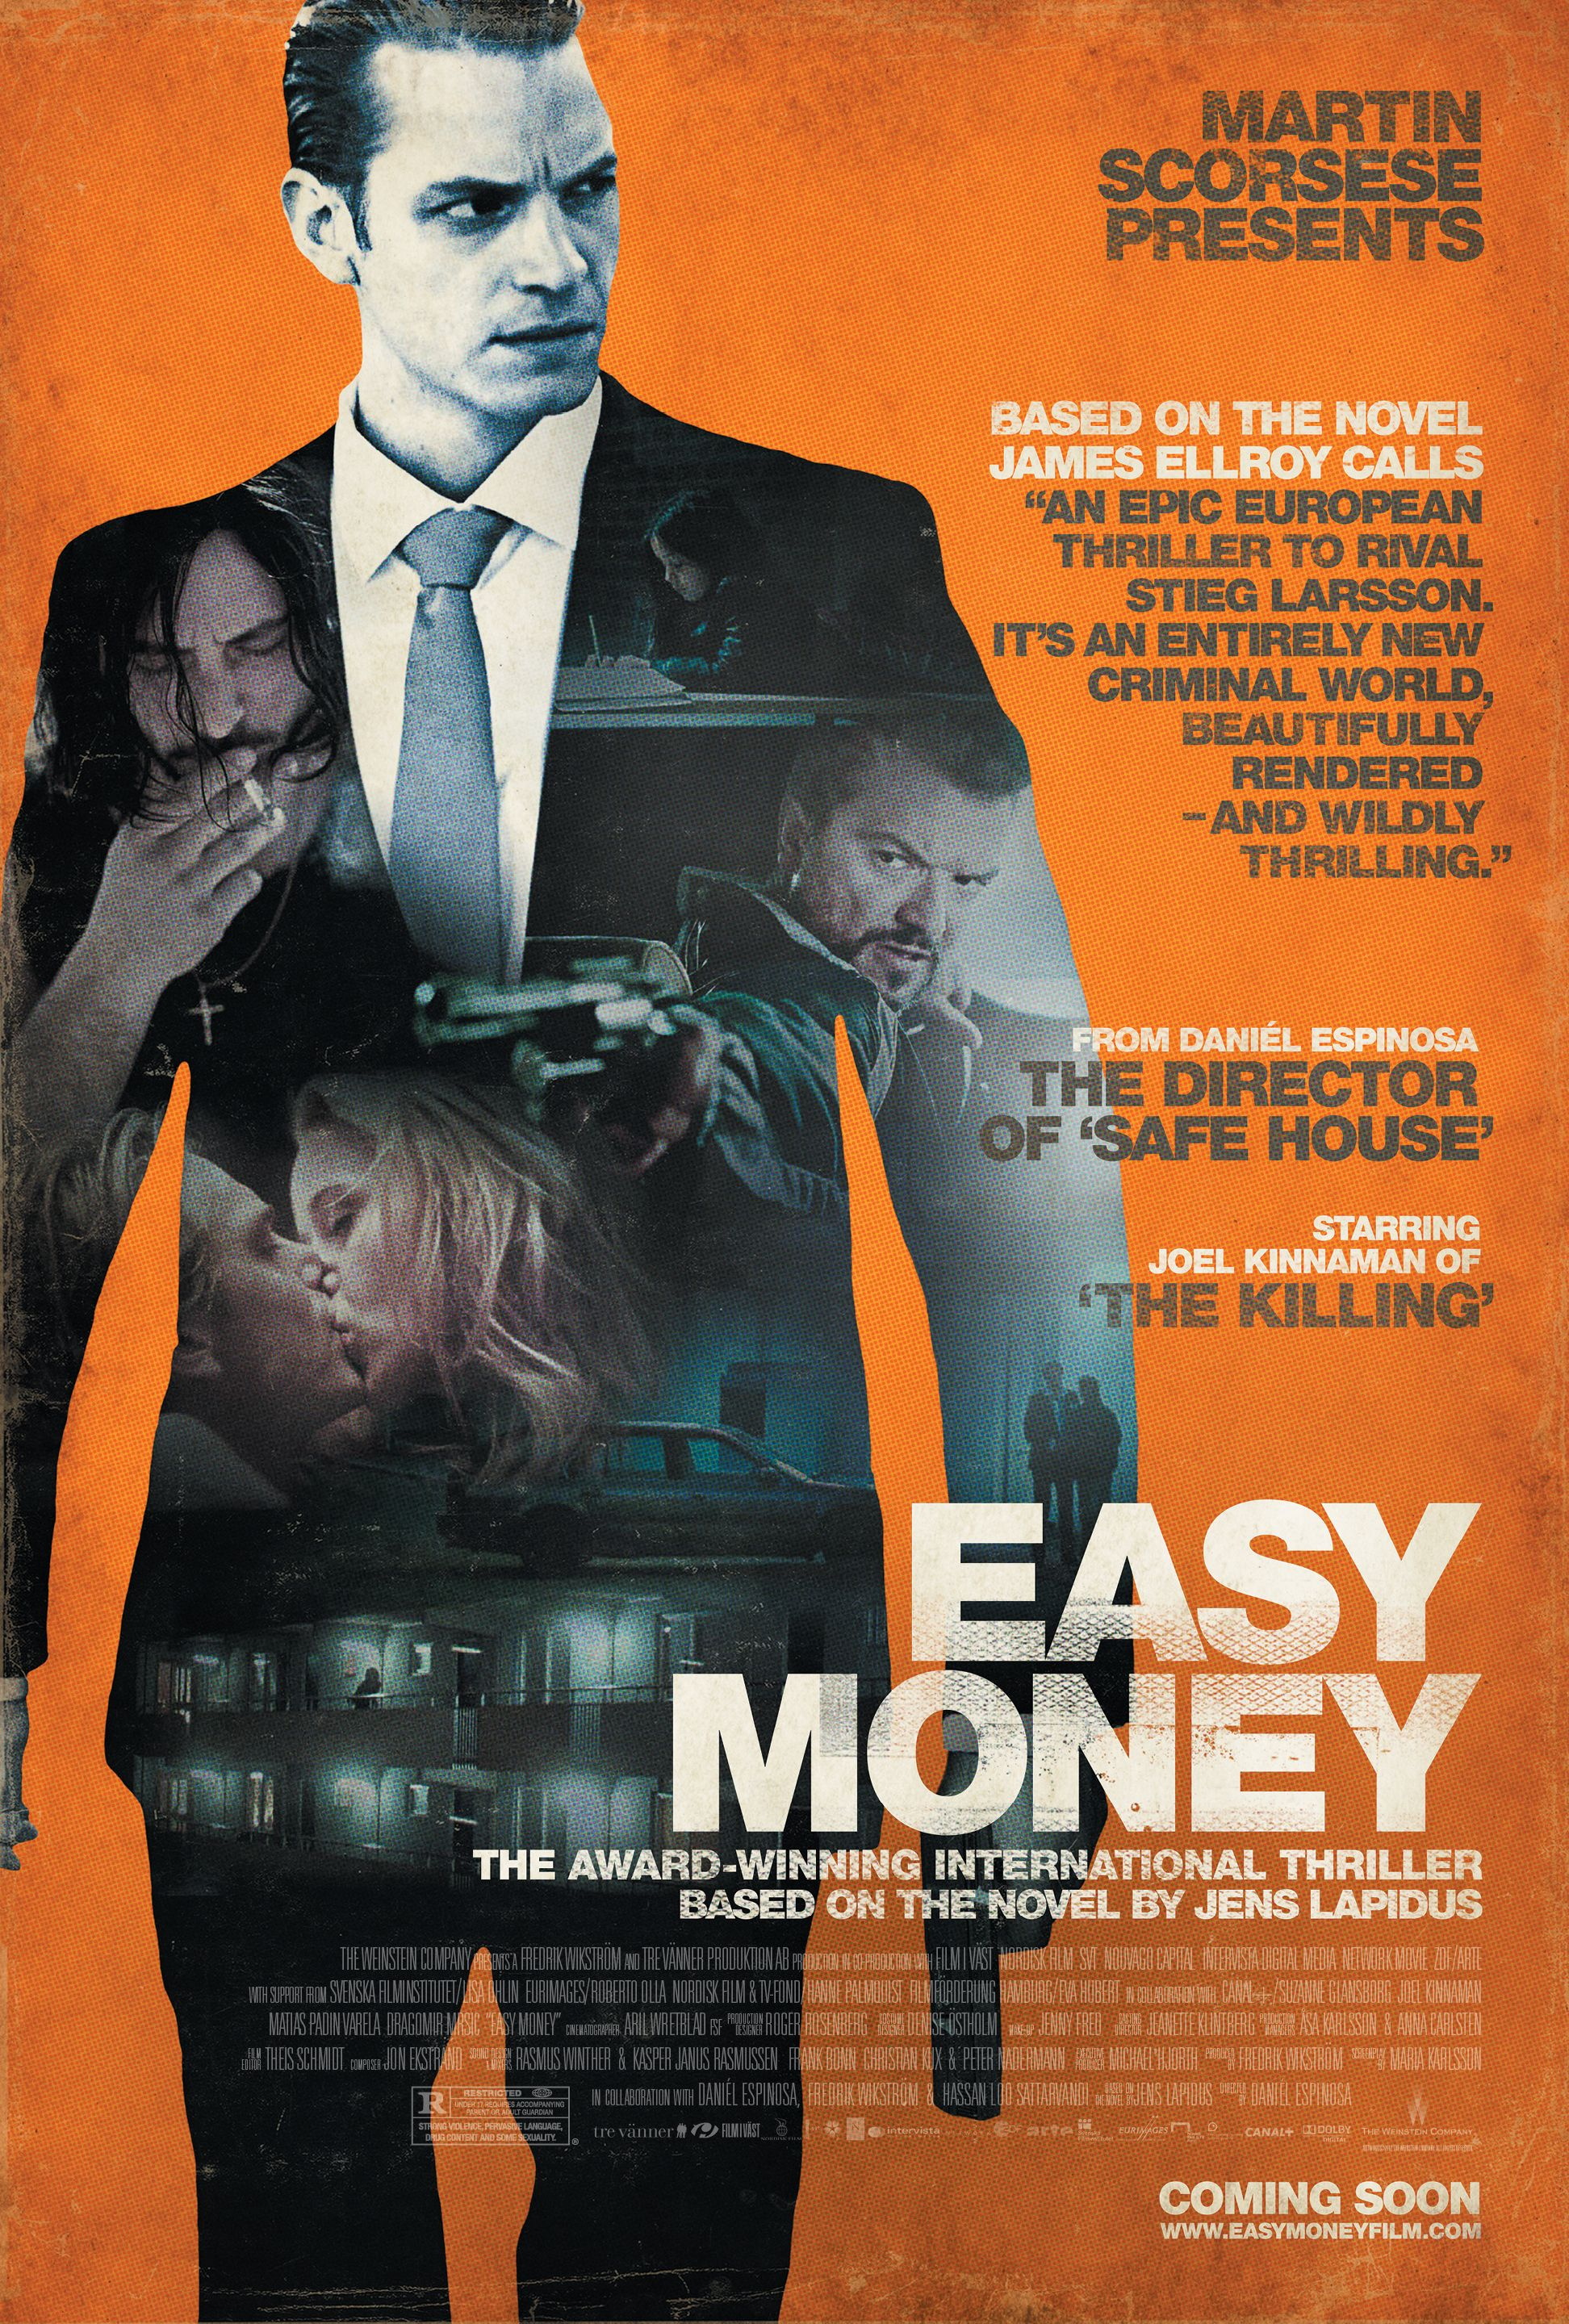 Easy Money I really enjoyed this fast paced action crime